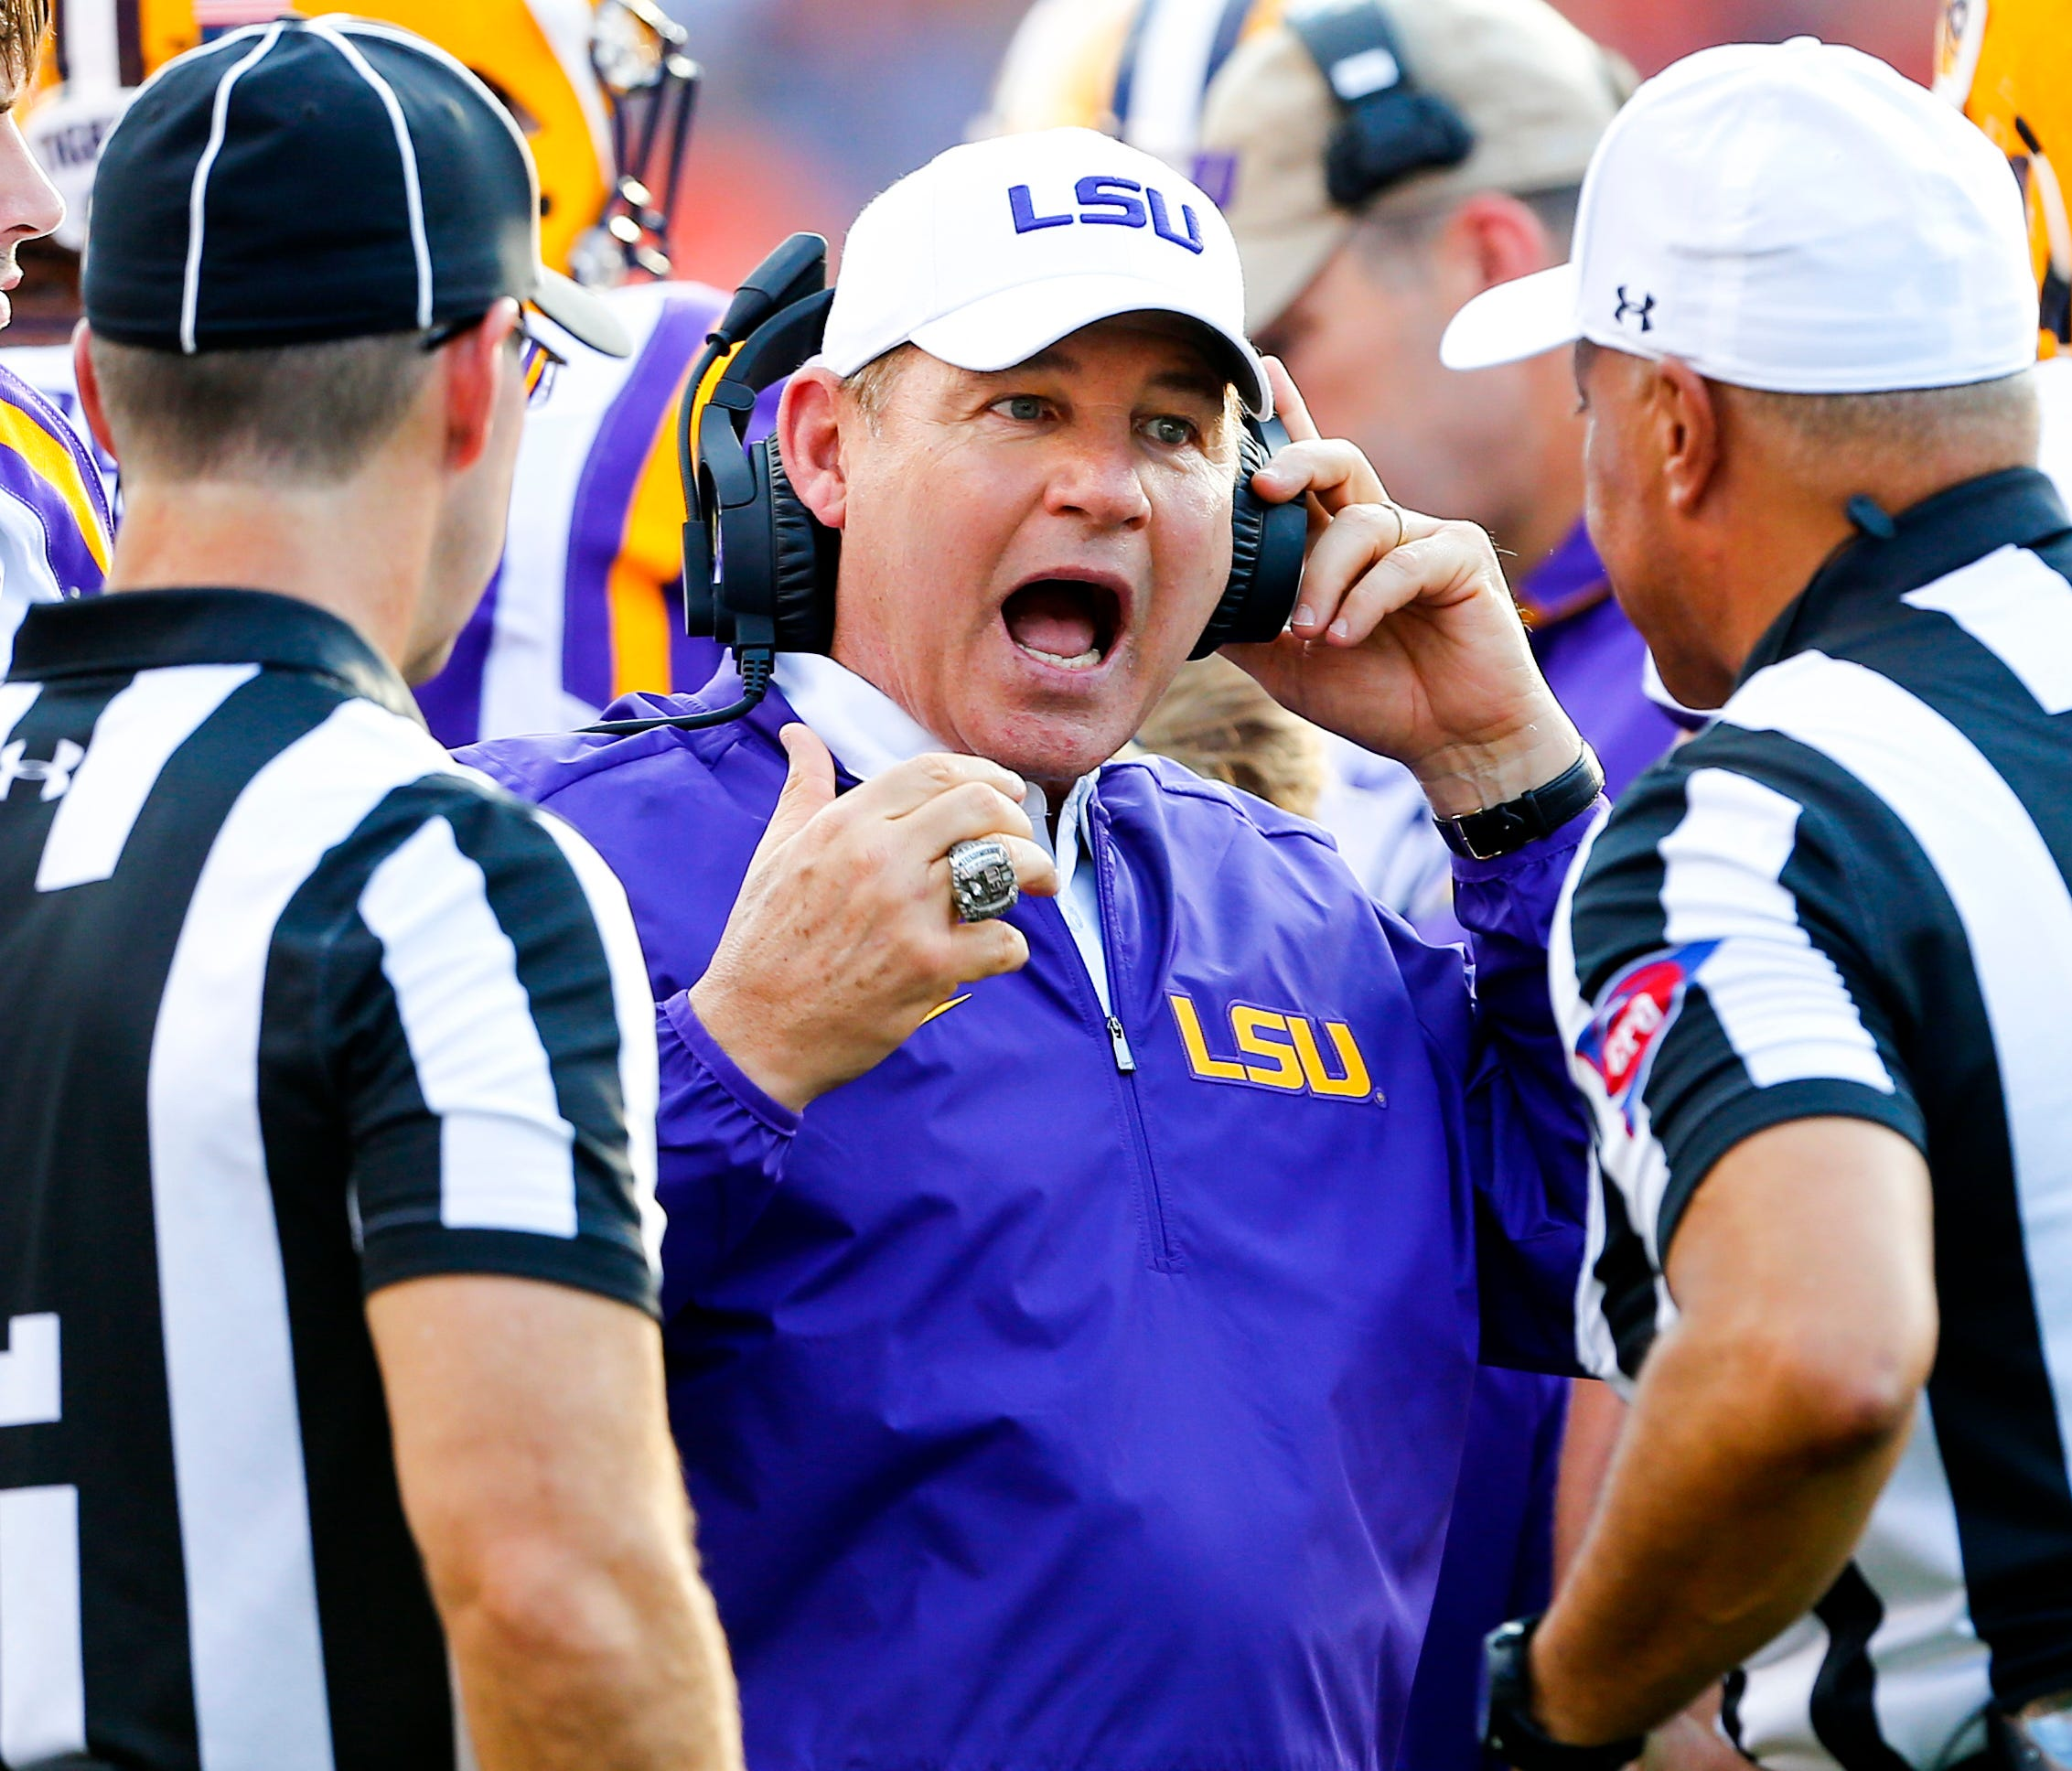 FILE - This Sept. 24, 2016 file photo shows LSU head coach Les Miles reacting to a call during the first half of an NCAA college football game against Auburn in Auburn, Ala. Two people familiar with the decision say LSU has fired Miles and offensive